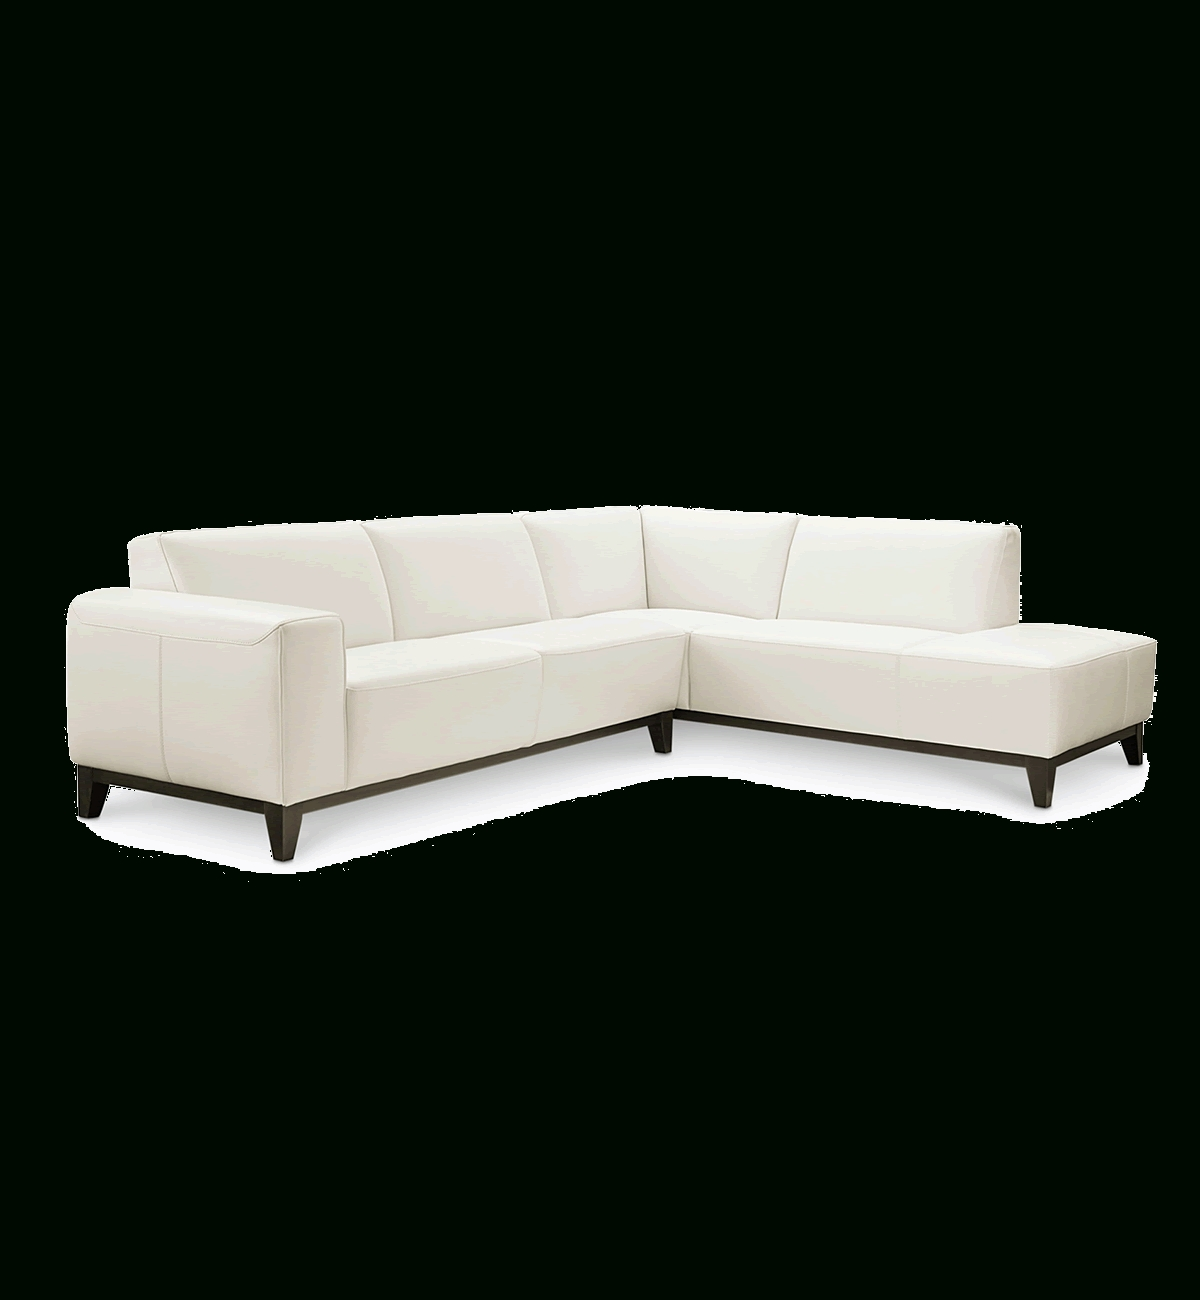 Most Current Leather Couches And Sofas – Macy's For Macys Leather Sofas (View 17 of 20)